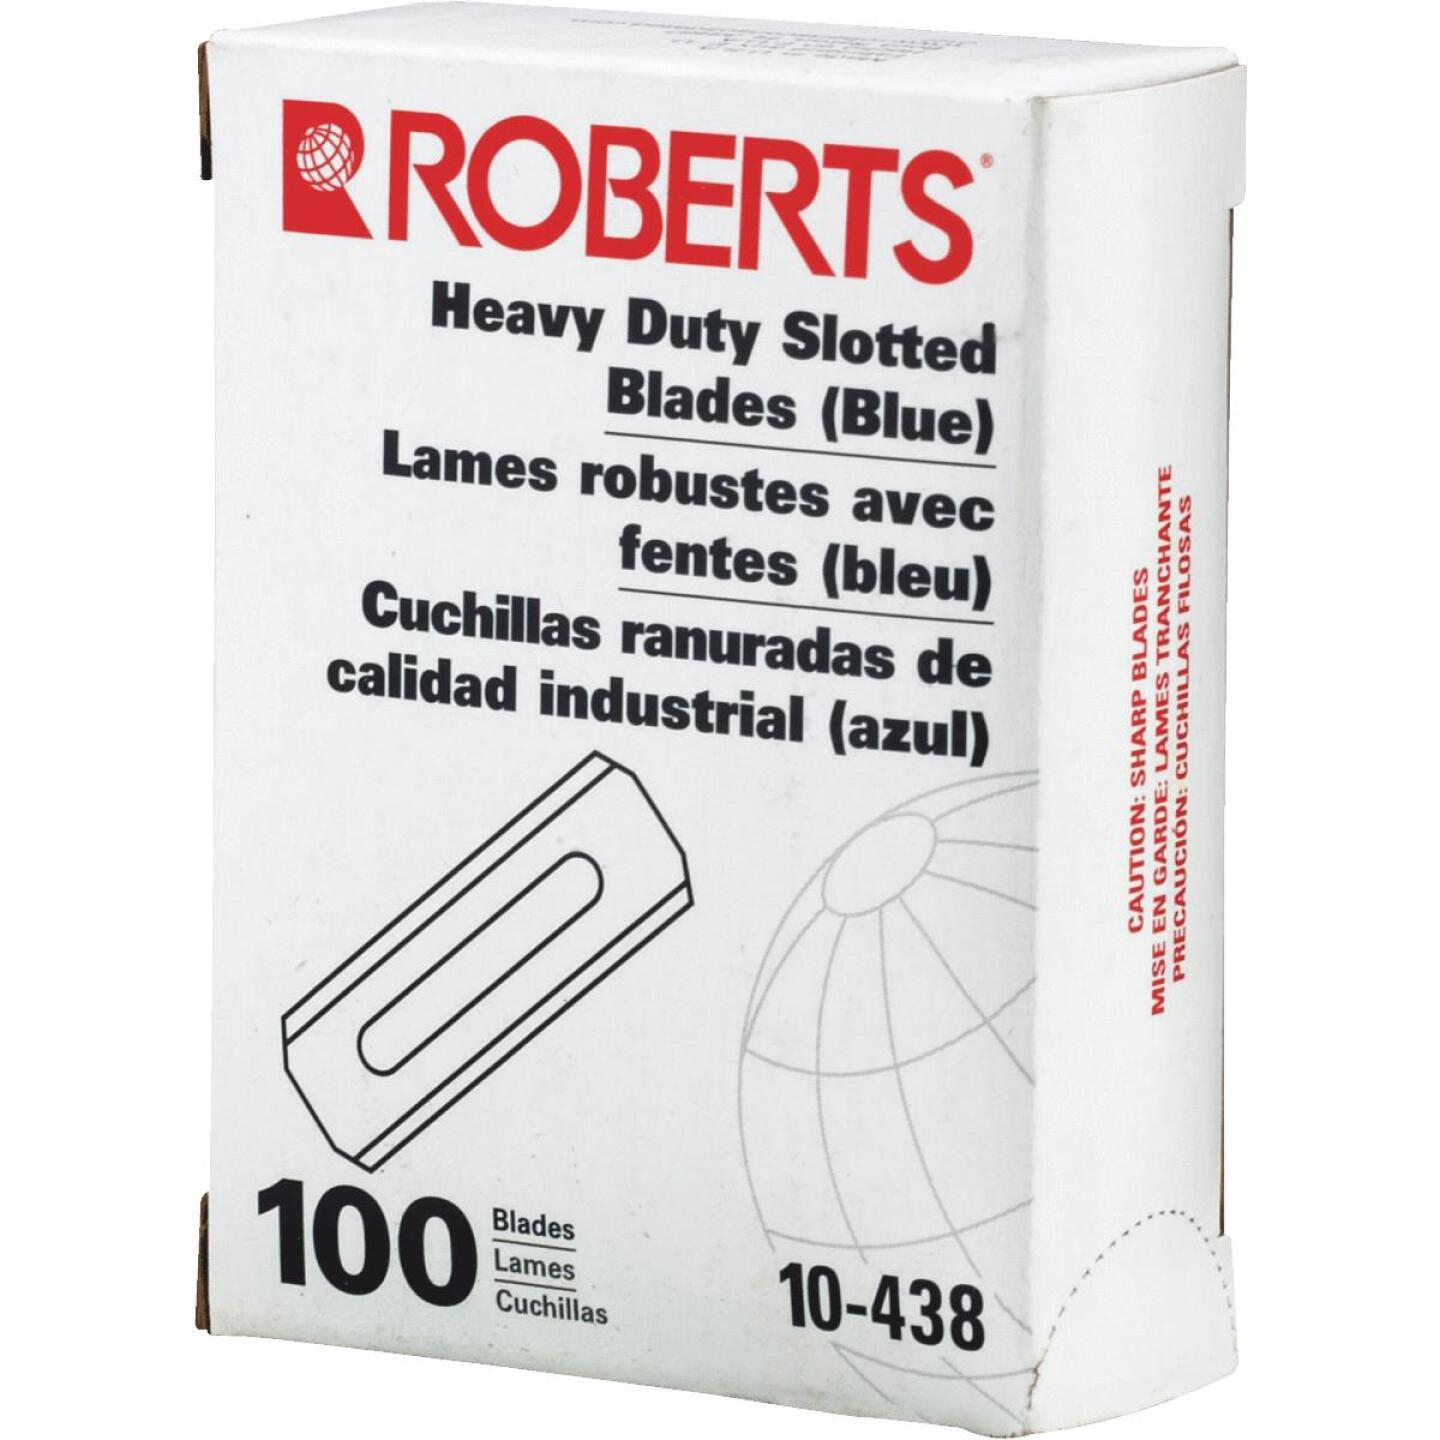 Roberts Heavy-Duty Double Edge Slotted 2-1/4 In. Utility Knife Blade (100-Pack) Image 2